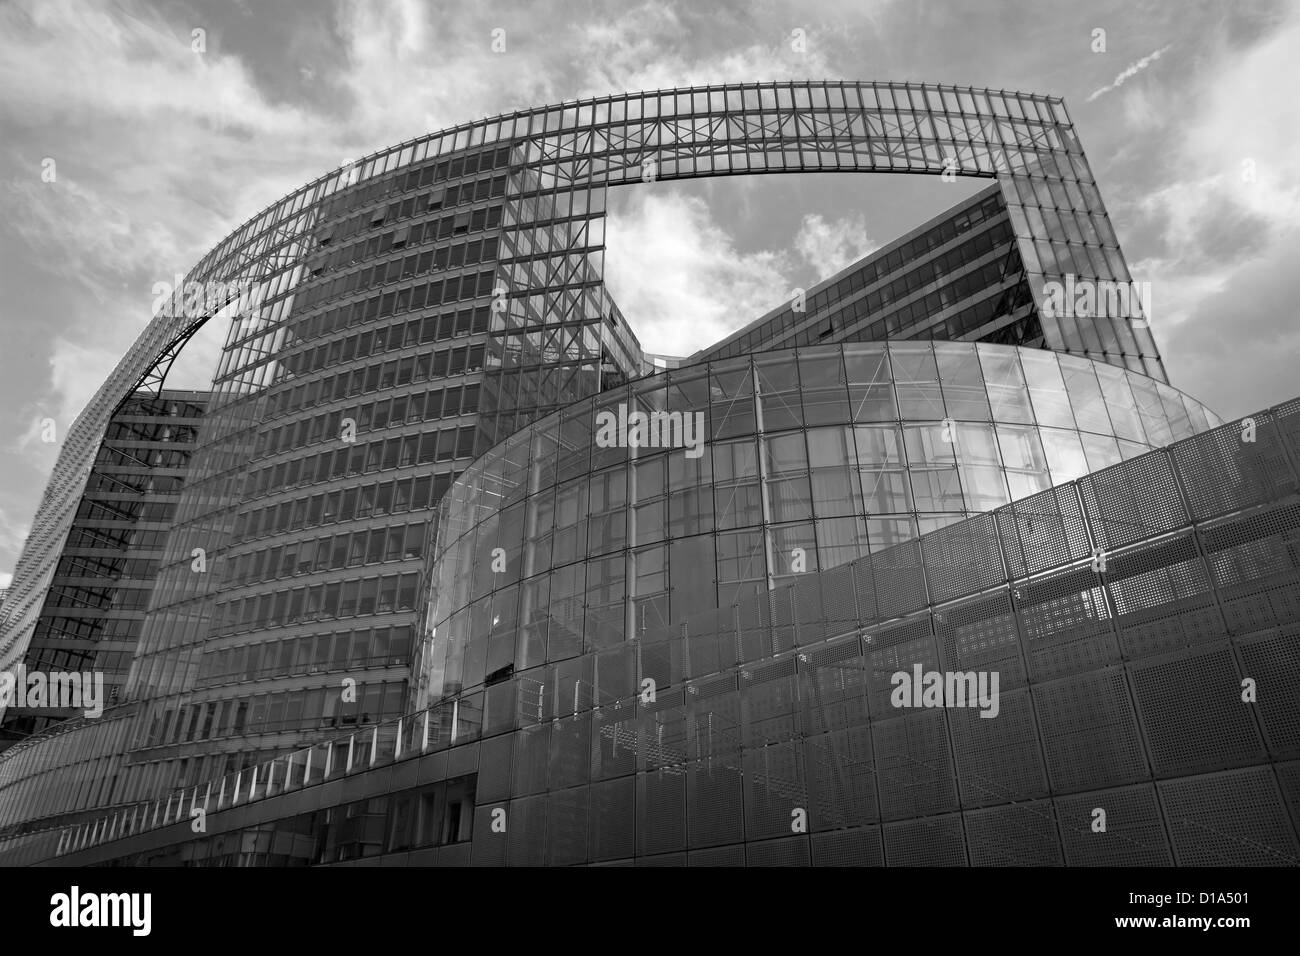 BRUSSELS - JUNE 24: European commission building at Schumann square on June 24, 2012 in Brussels. - Stock Image